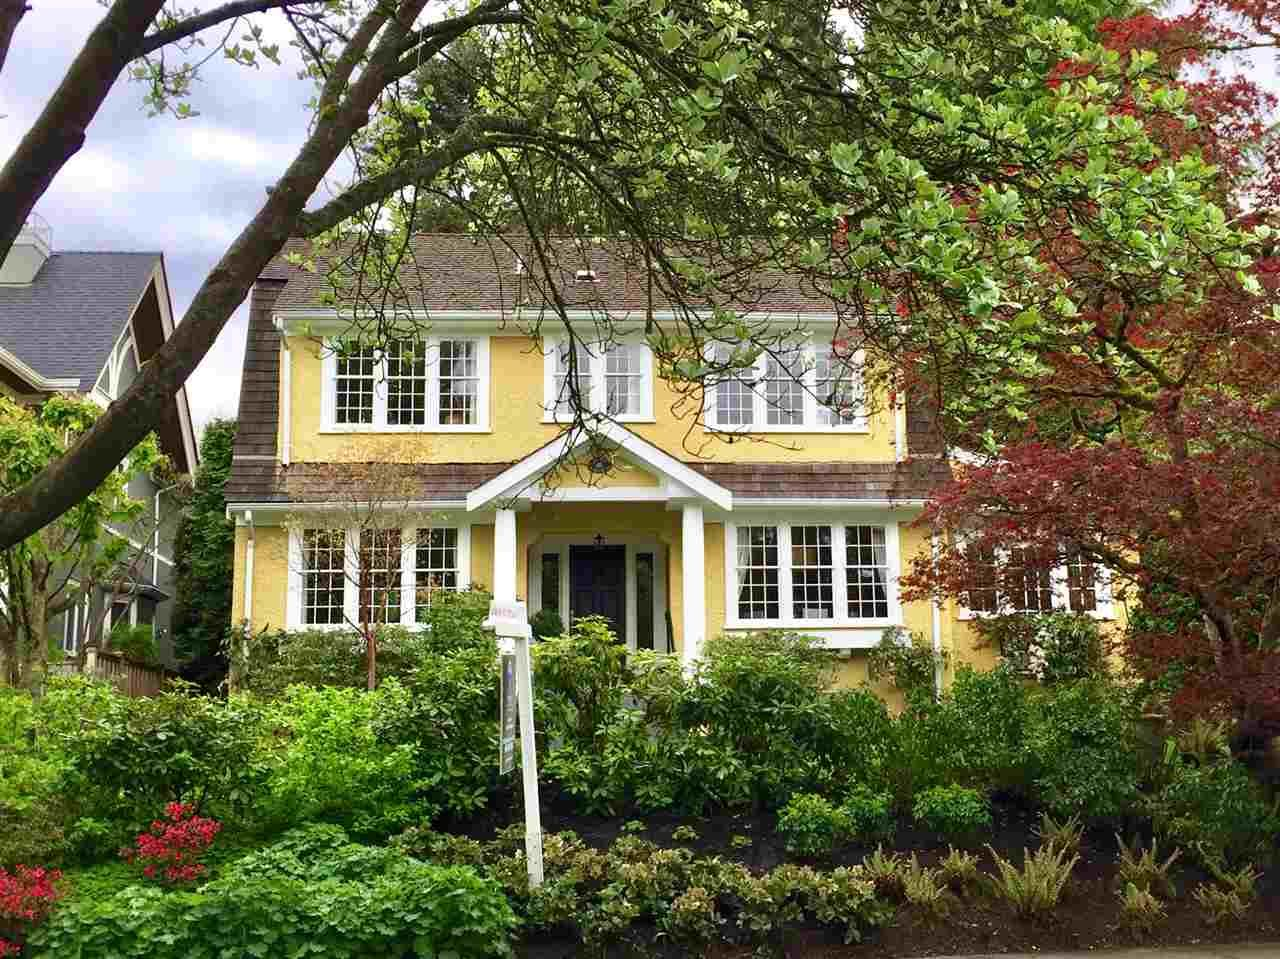 """Main Photo: 5210 MARGUERITE Street in Vancouver: Shaughnessy House for sale in """"Shaughnessy"""" (Vancouver West)  : MLS®# R2161940"""